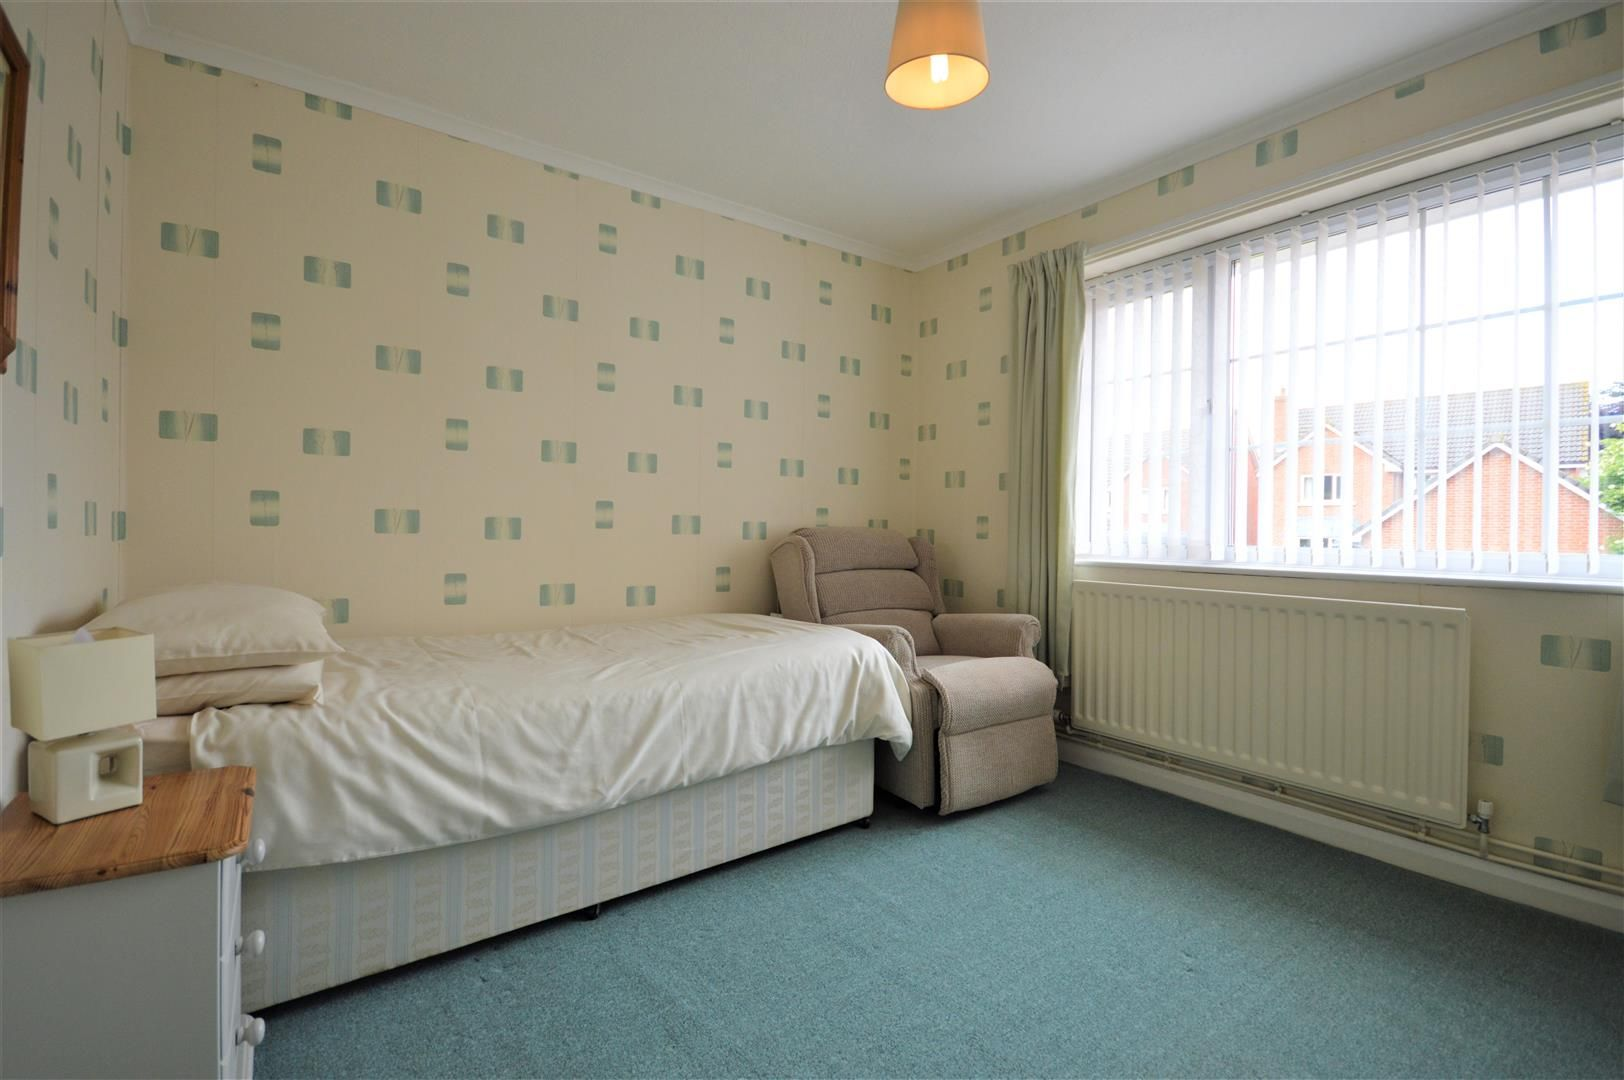 2 bed semi-detached-bungalow for sale in Leominster  - Property Image 6